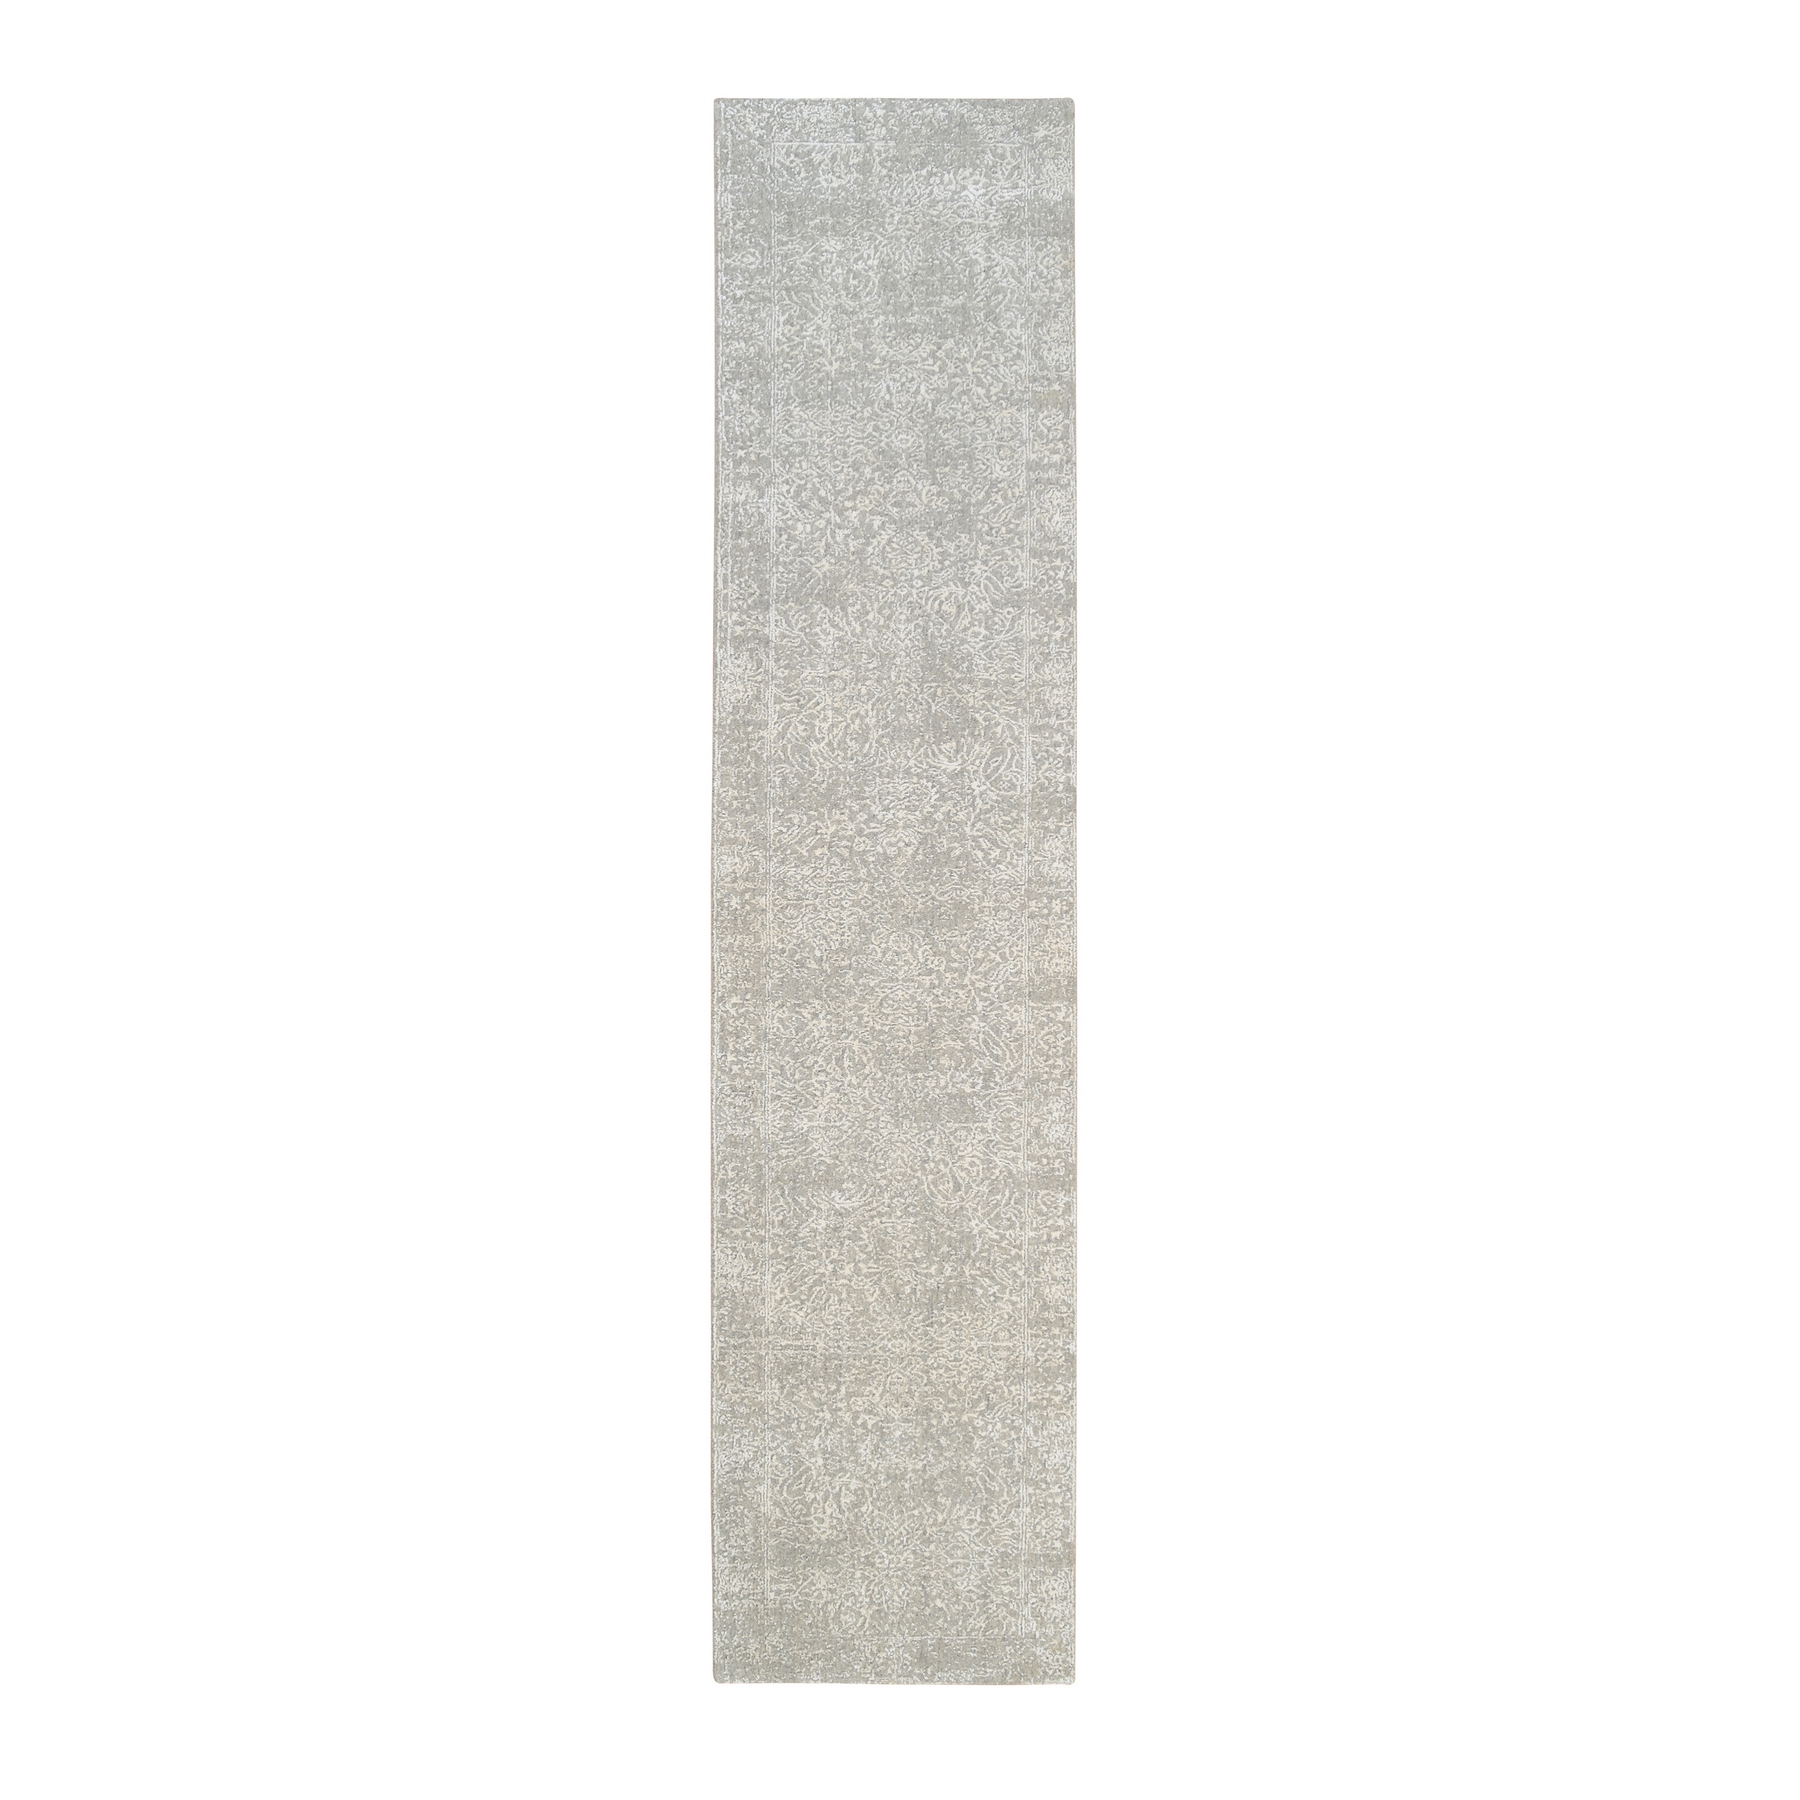 Mid Century Modern Collection Hand Loomed Grey Rug No: 1126600